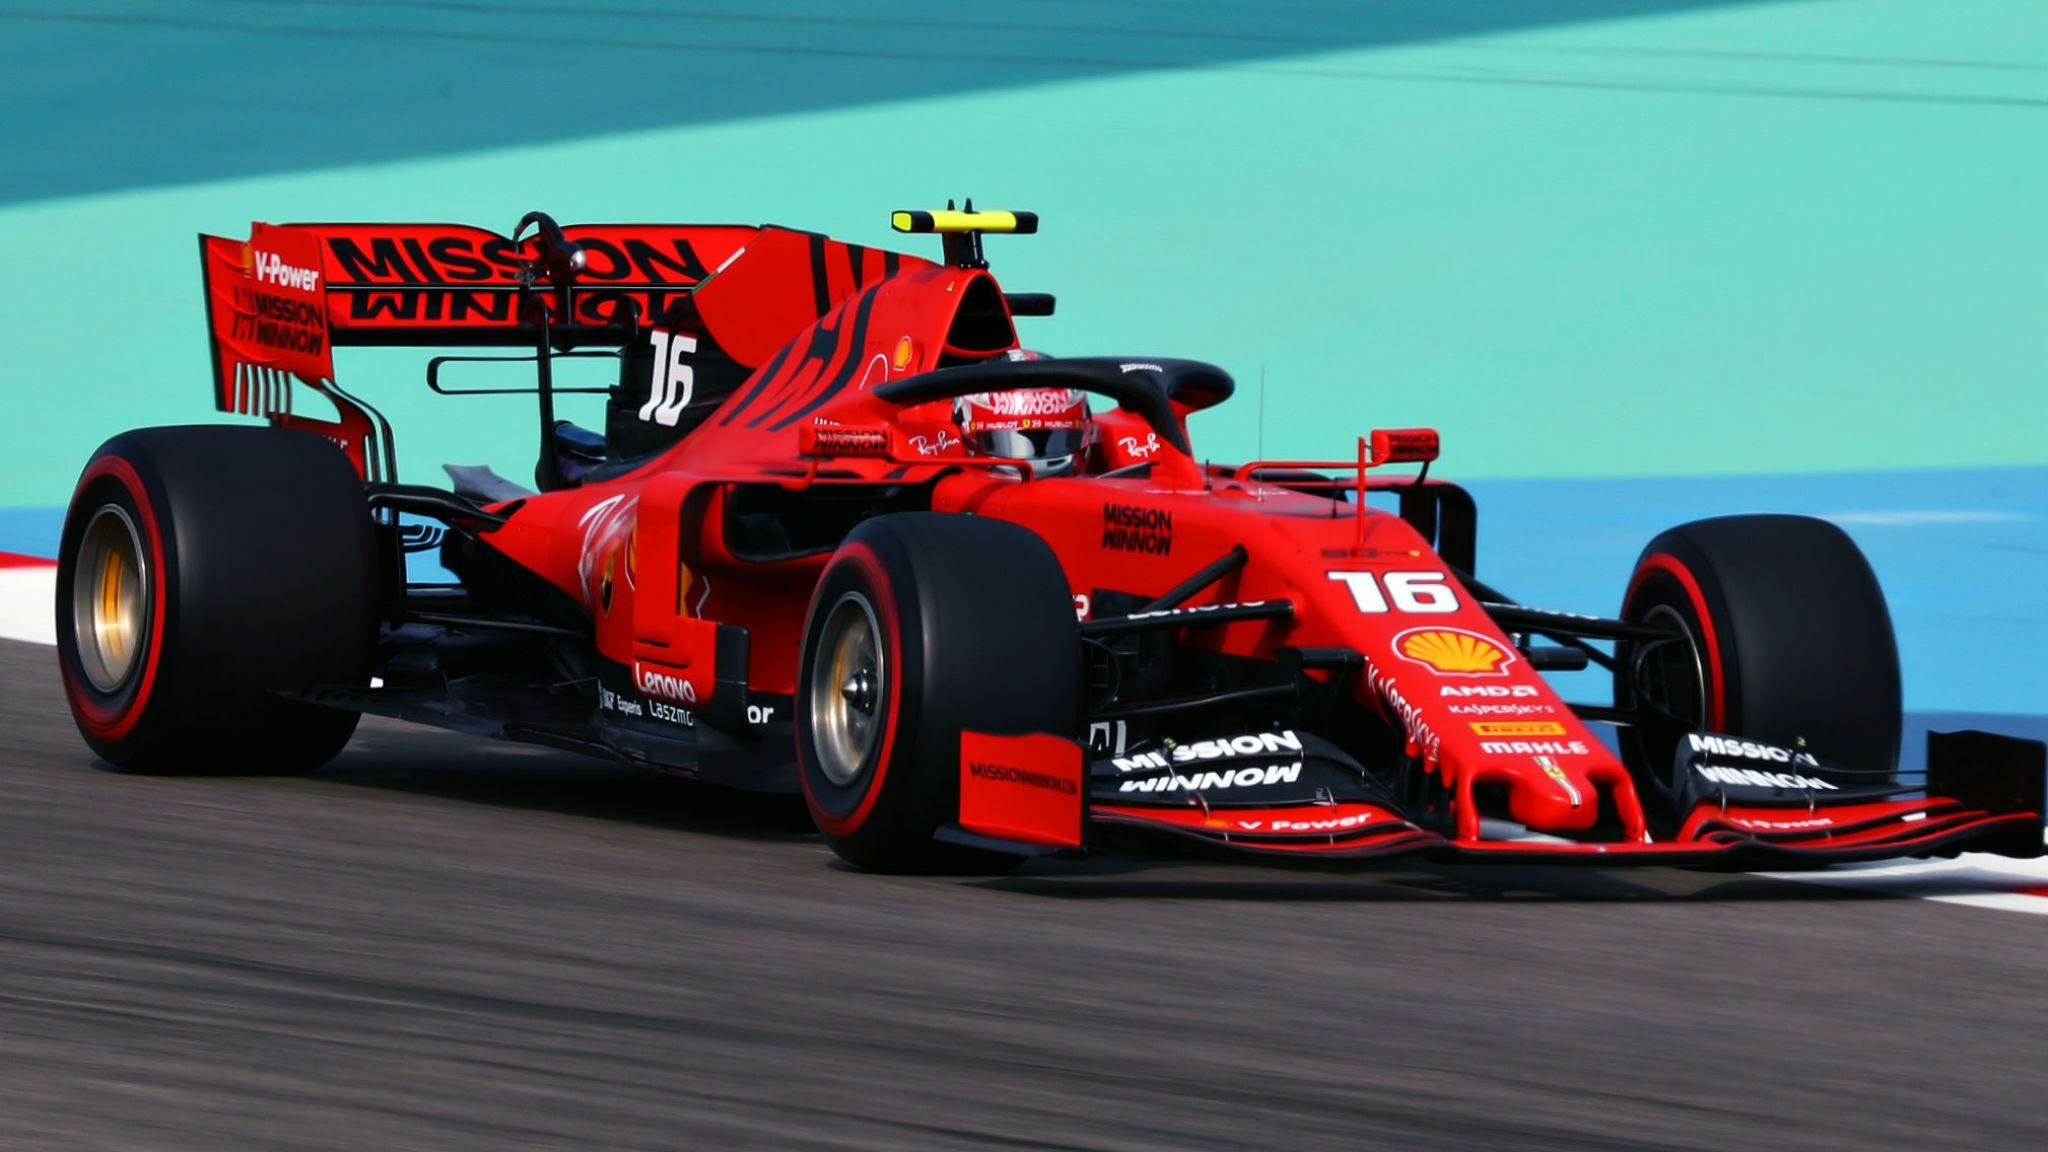 Charles Leclerc Wallpapers Wallpaper Cave